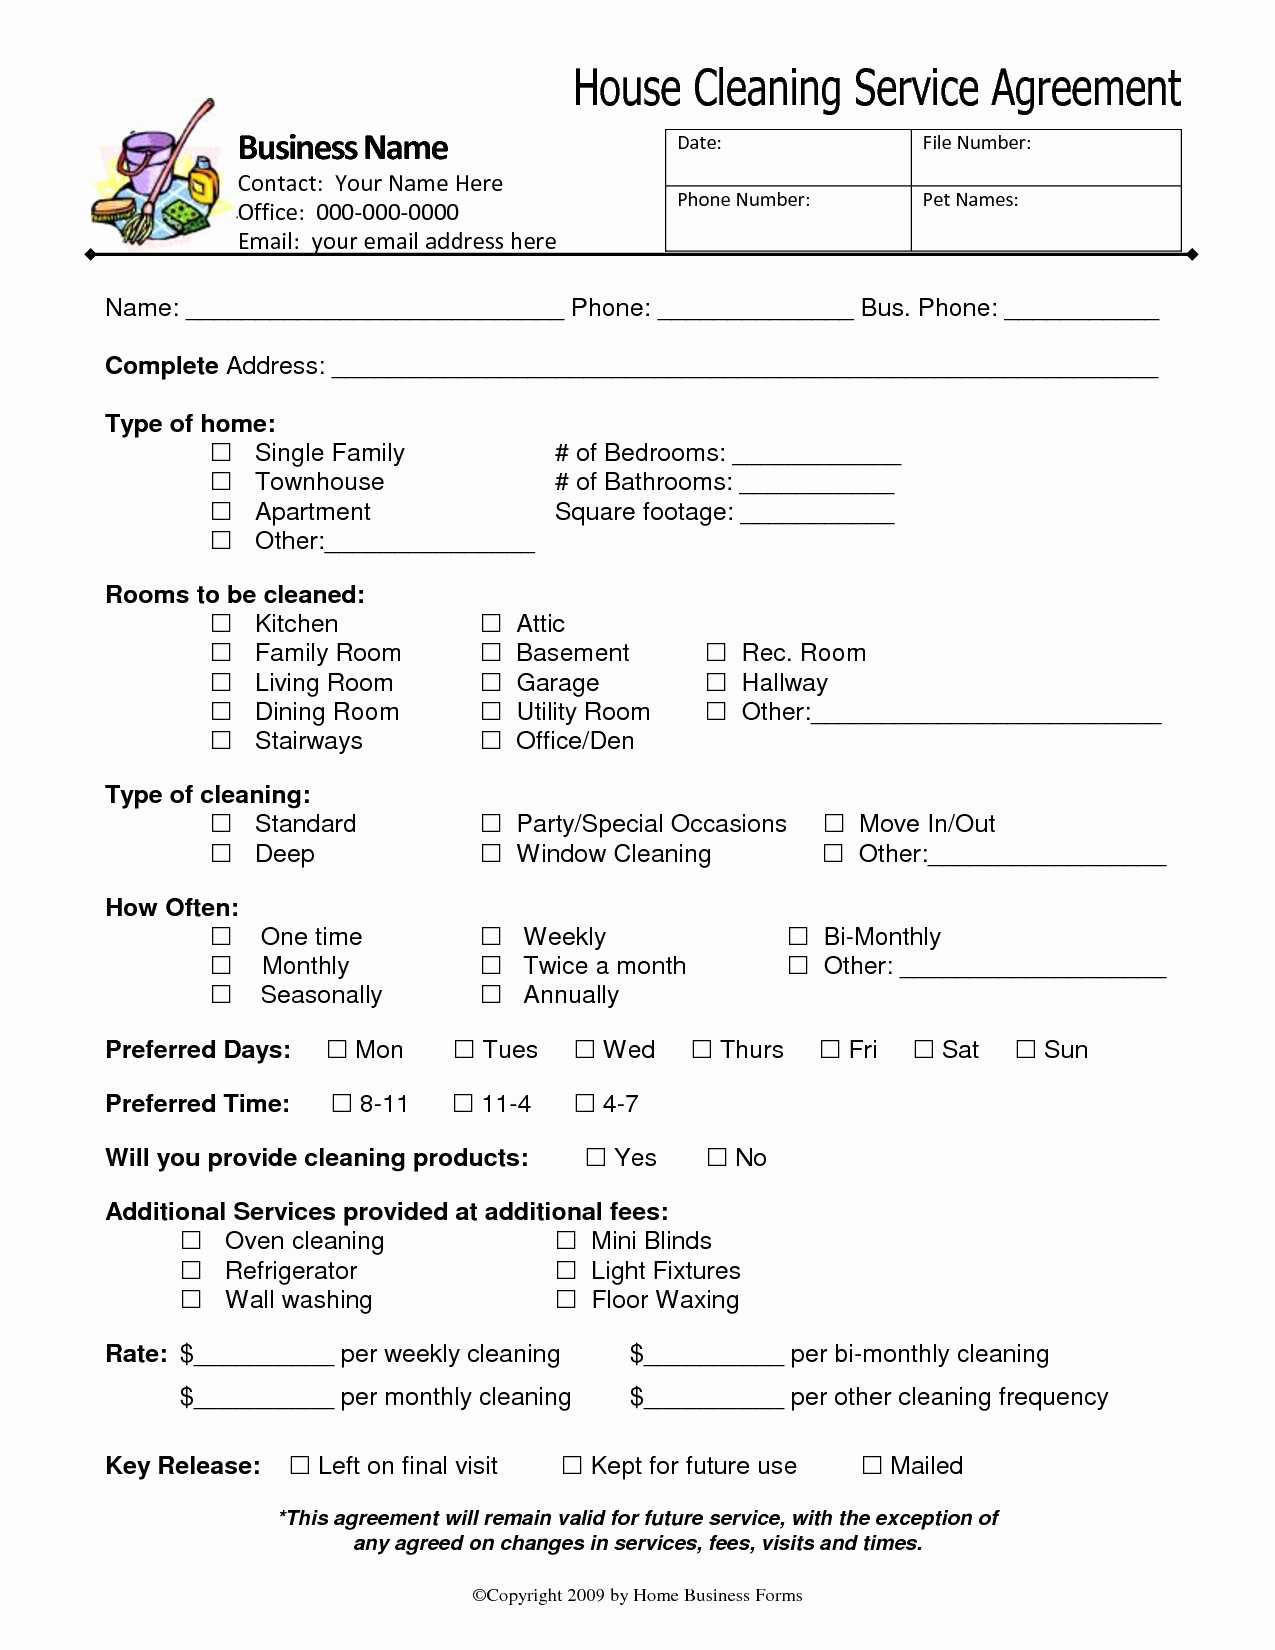 Service Agreement Template Pdf Best Of Know About House Cleaning Services Agreement – Home Services